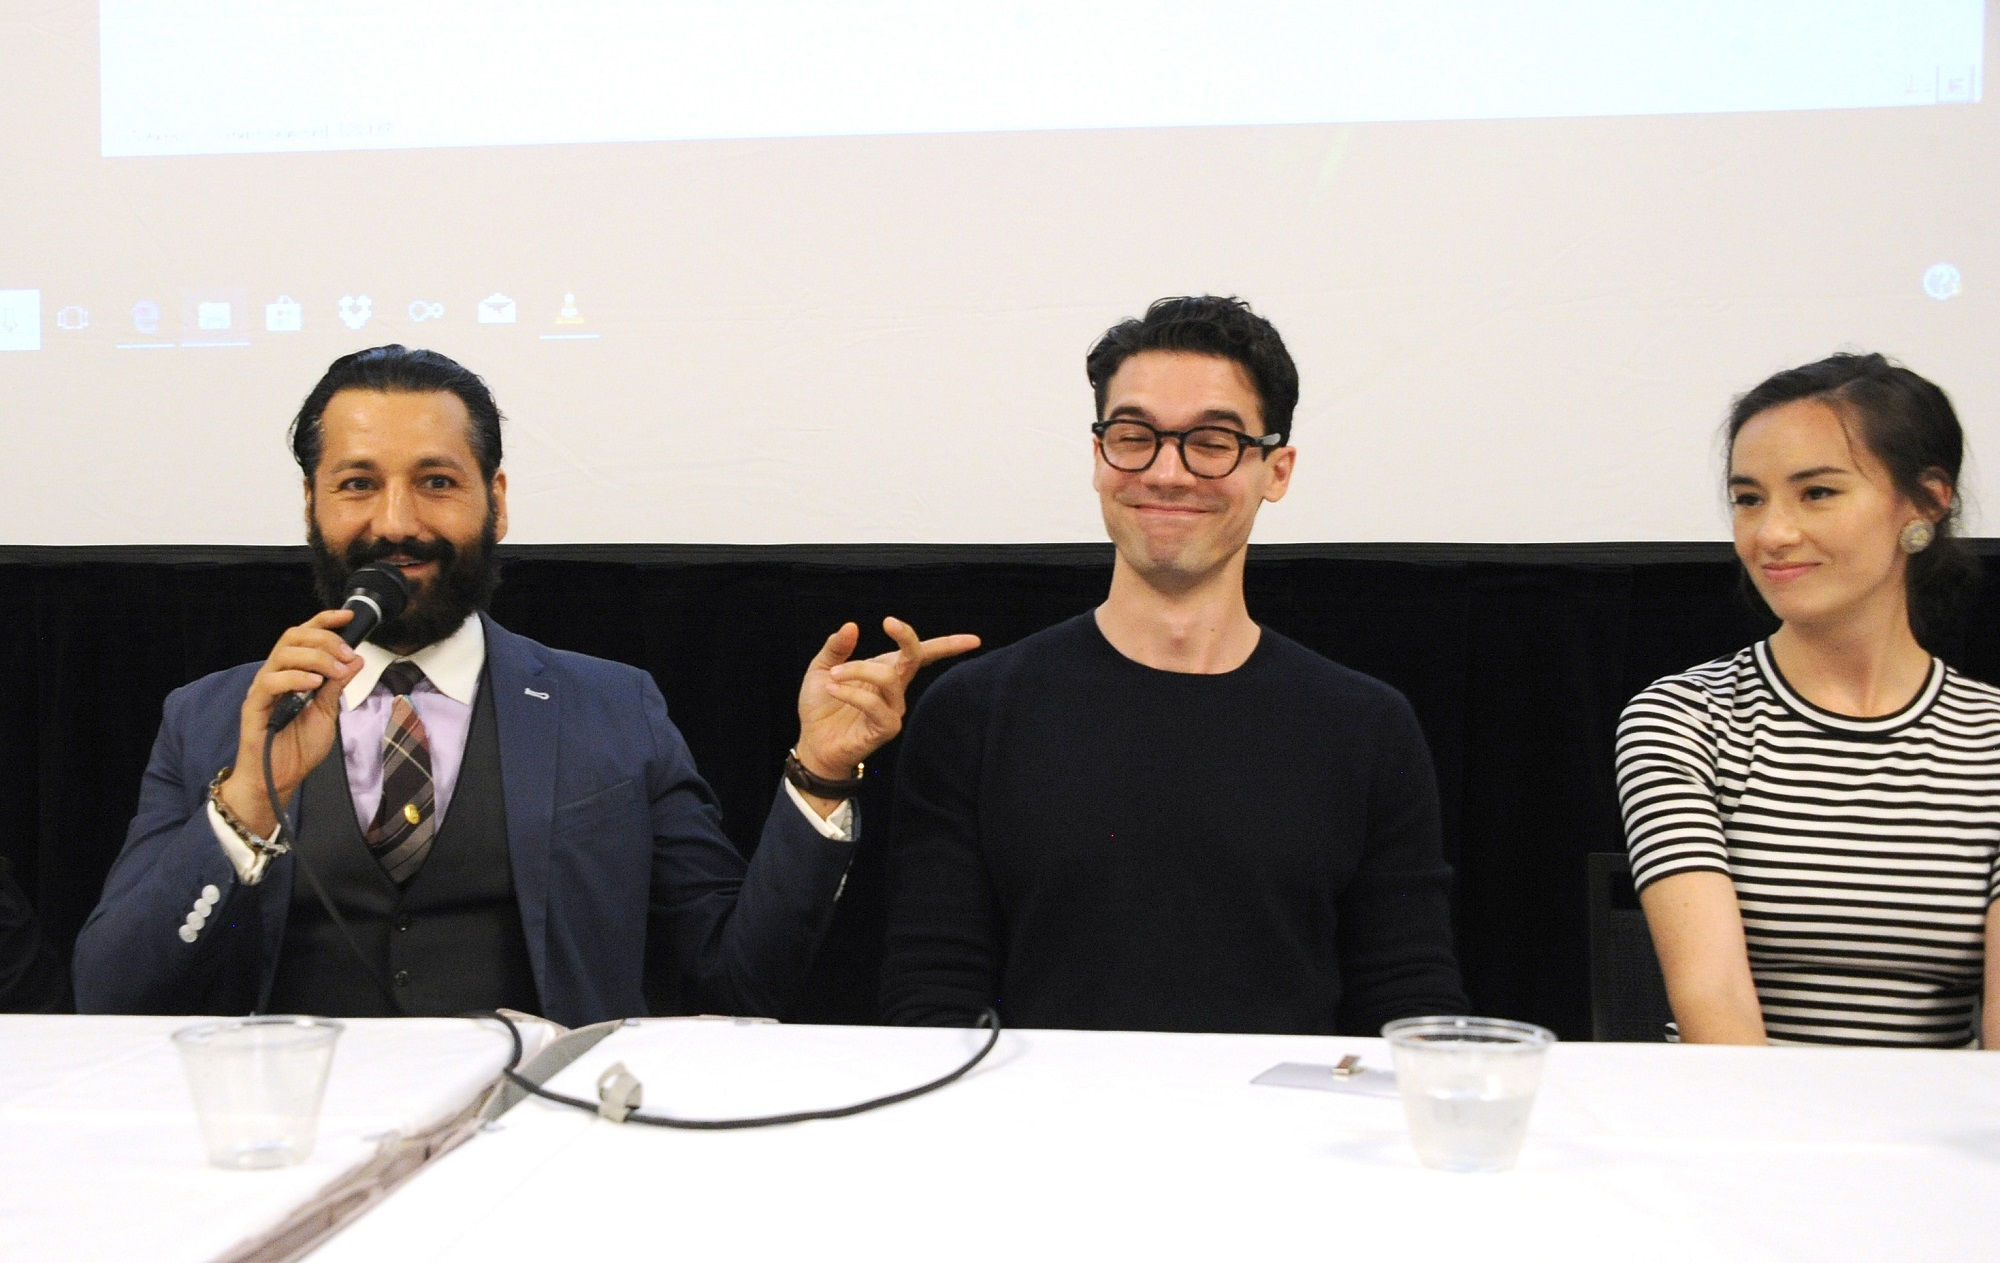 Cas Anvar, Steven Strait, and Cara Gee of The Expanse